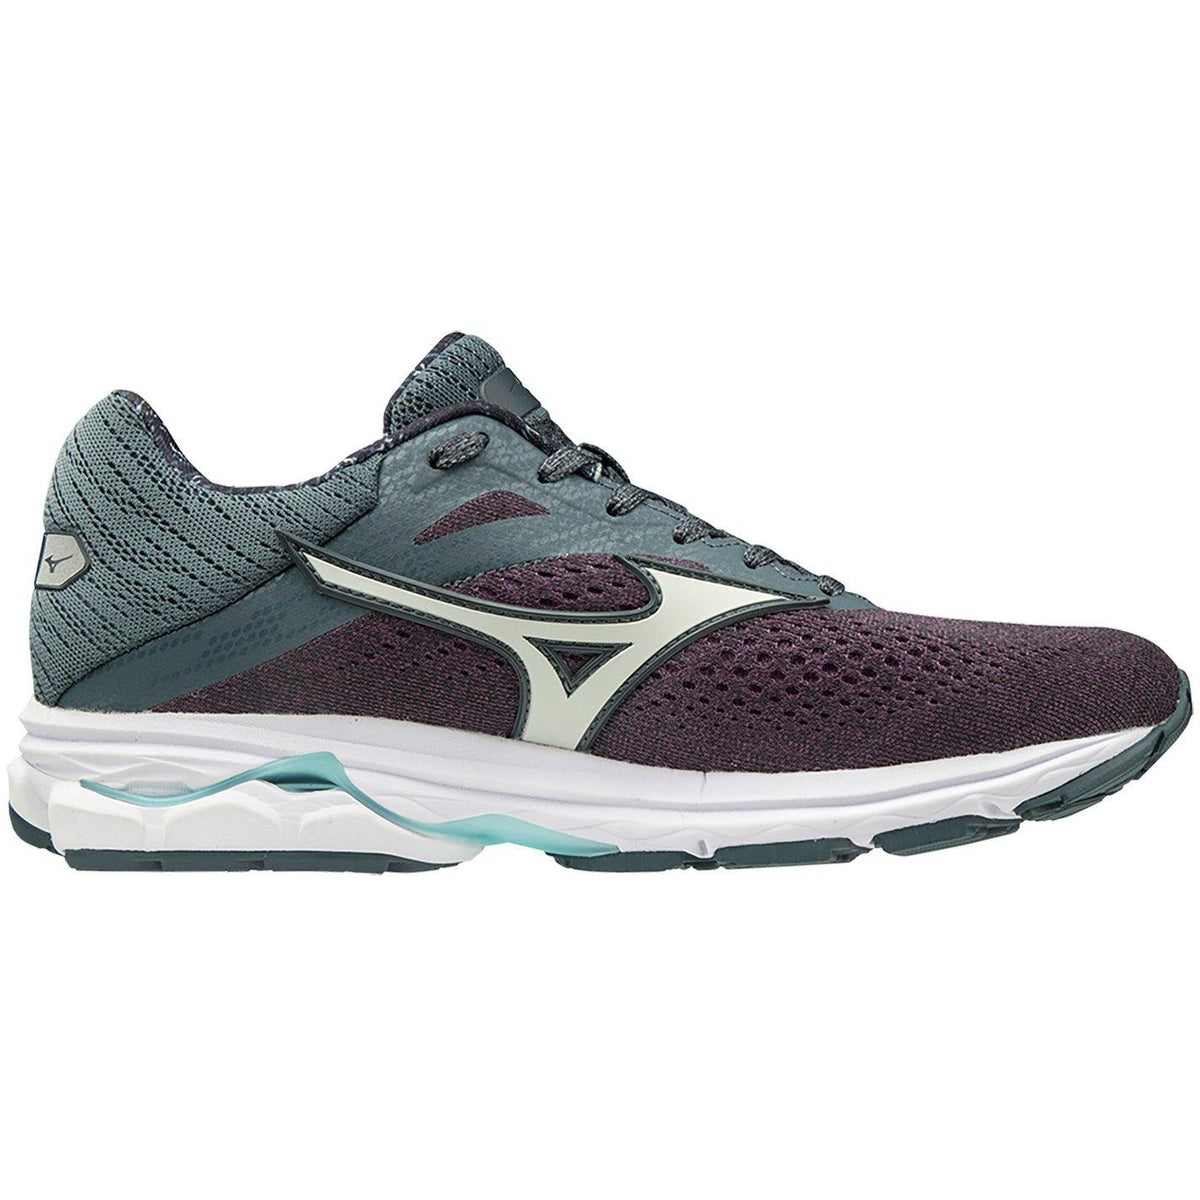 Mizuno Wave Rider 23 Womens